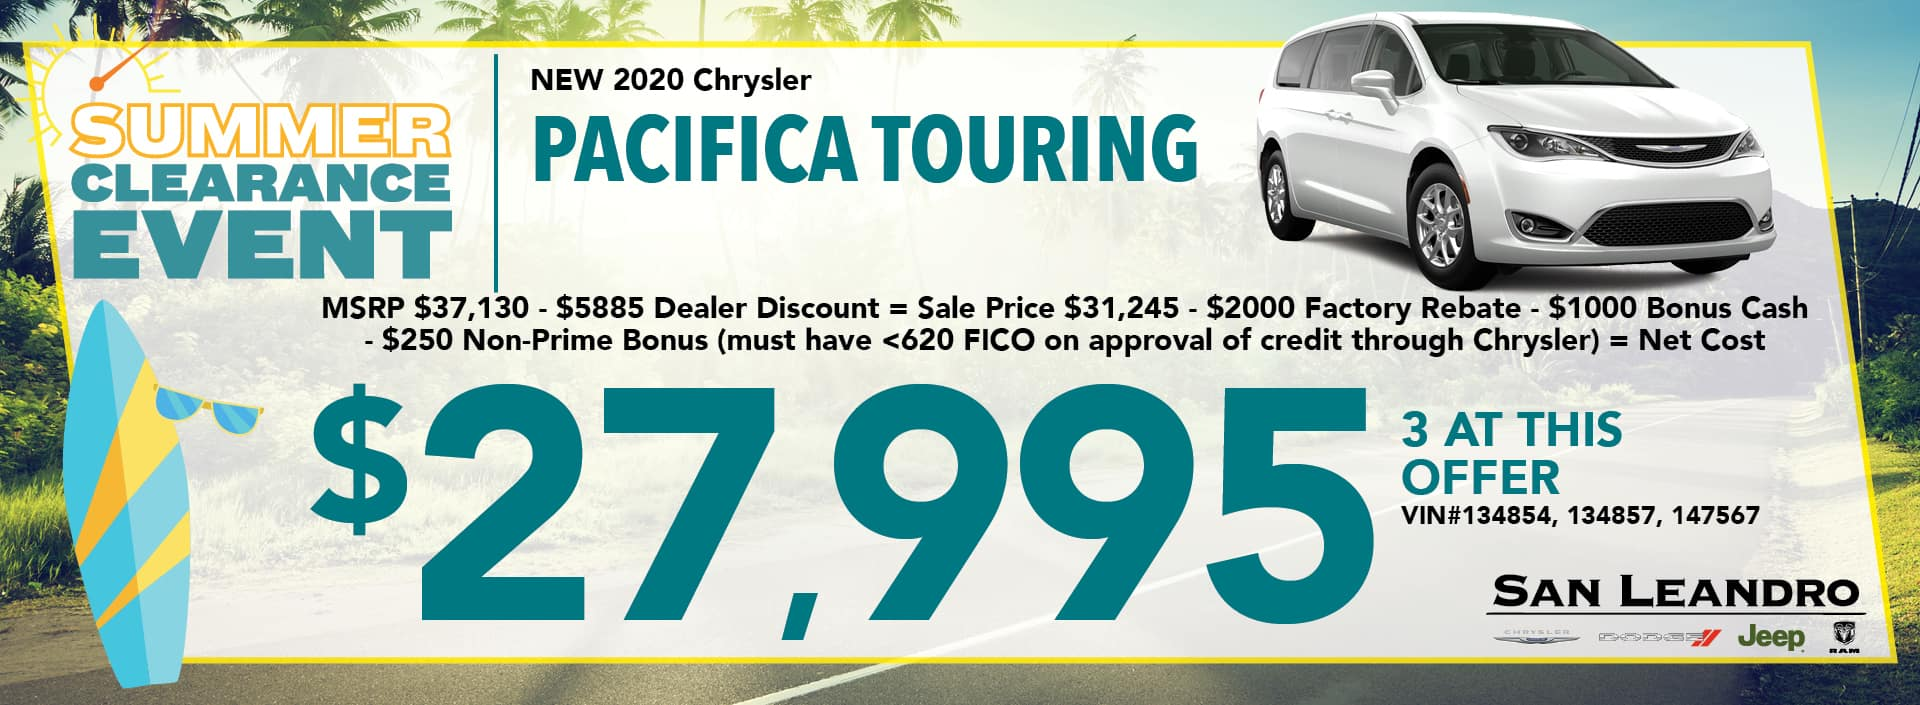 Pacifica Touring